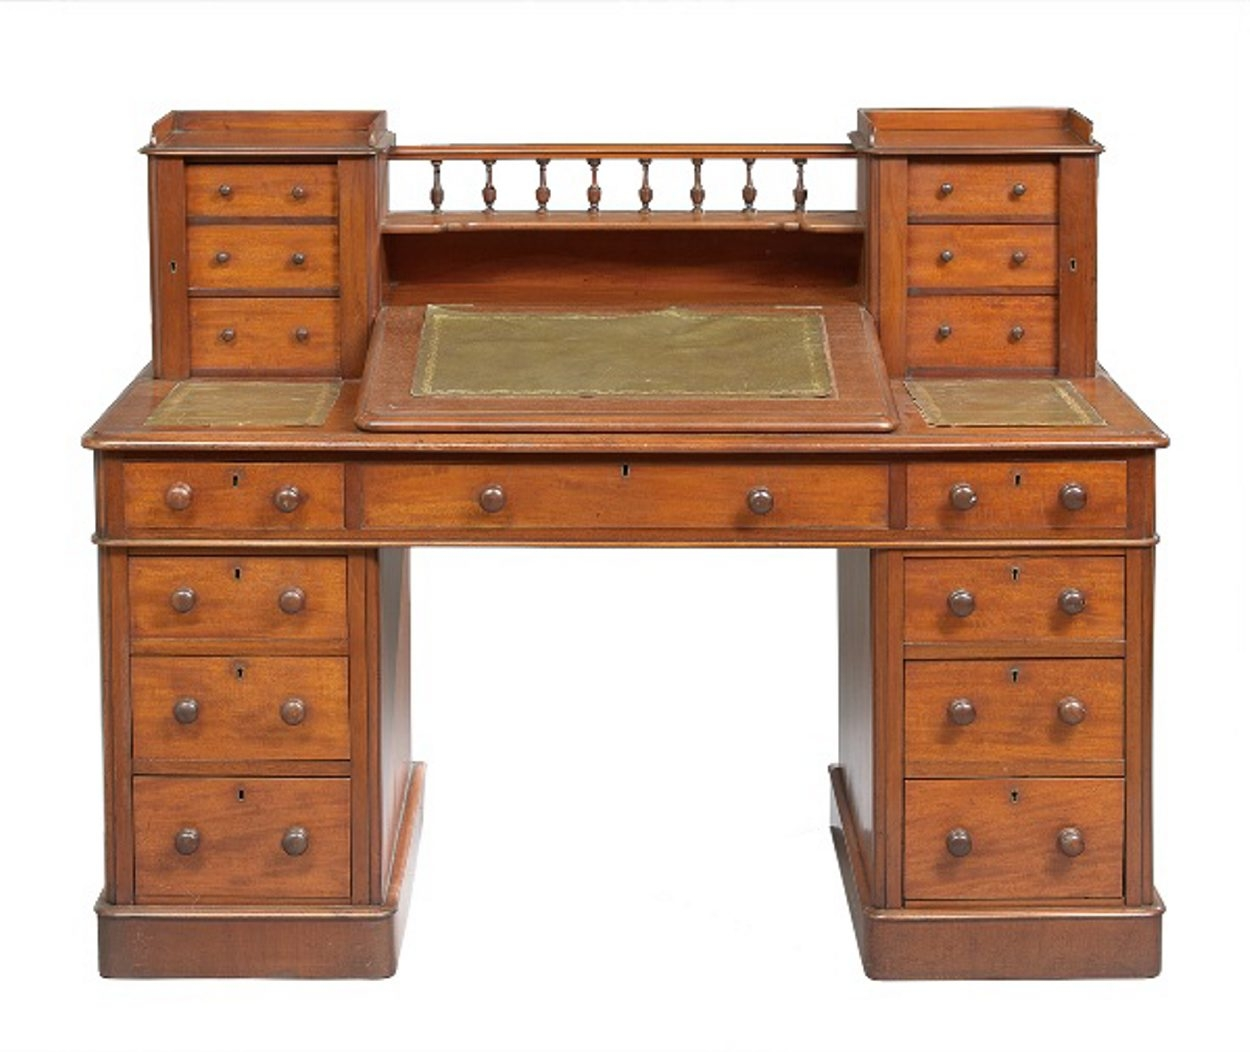 This English William IV desk cost only $984 at a New Orleans Auction Galleries sale. That's much less than a new desk of the same quality. The antique desk, made of solid mahogany in about 1830, has two shelves and 15 drawers.